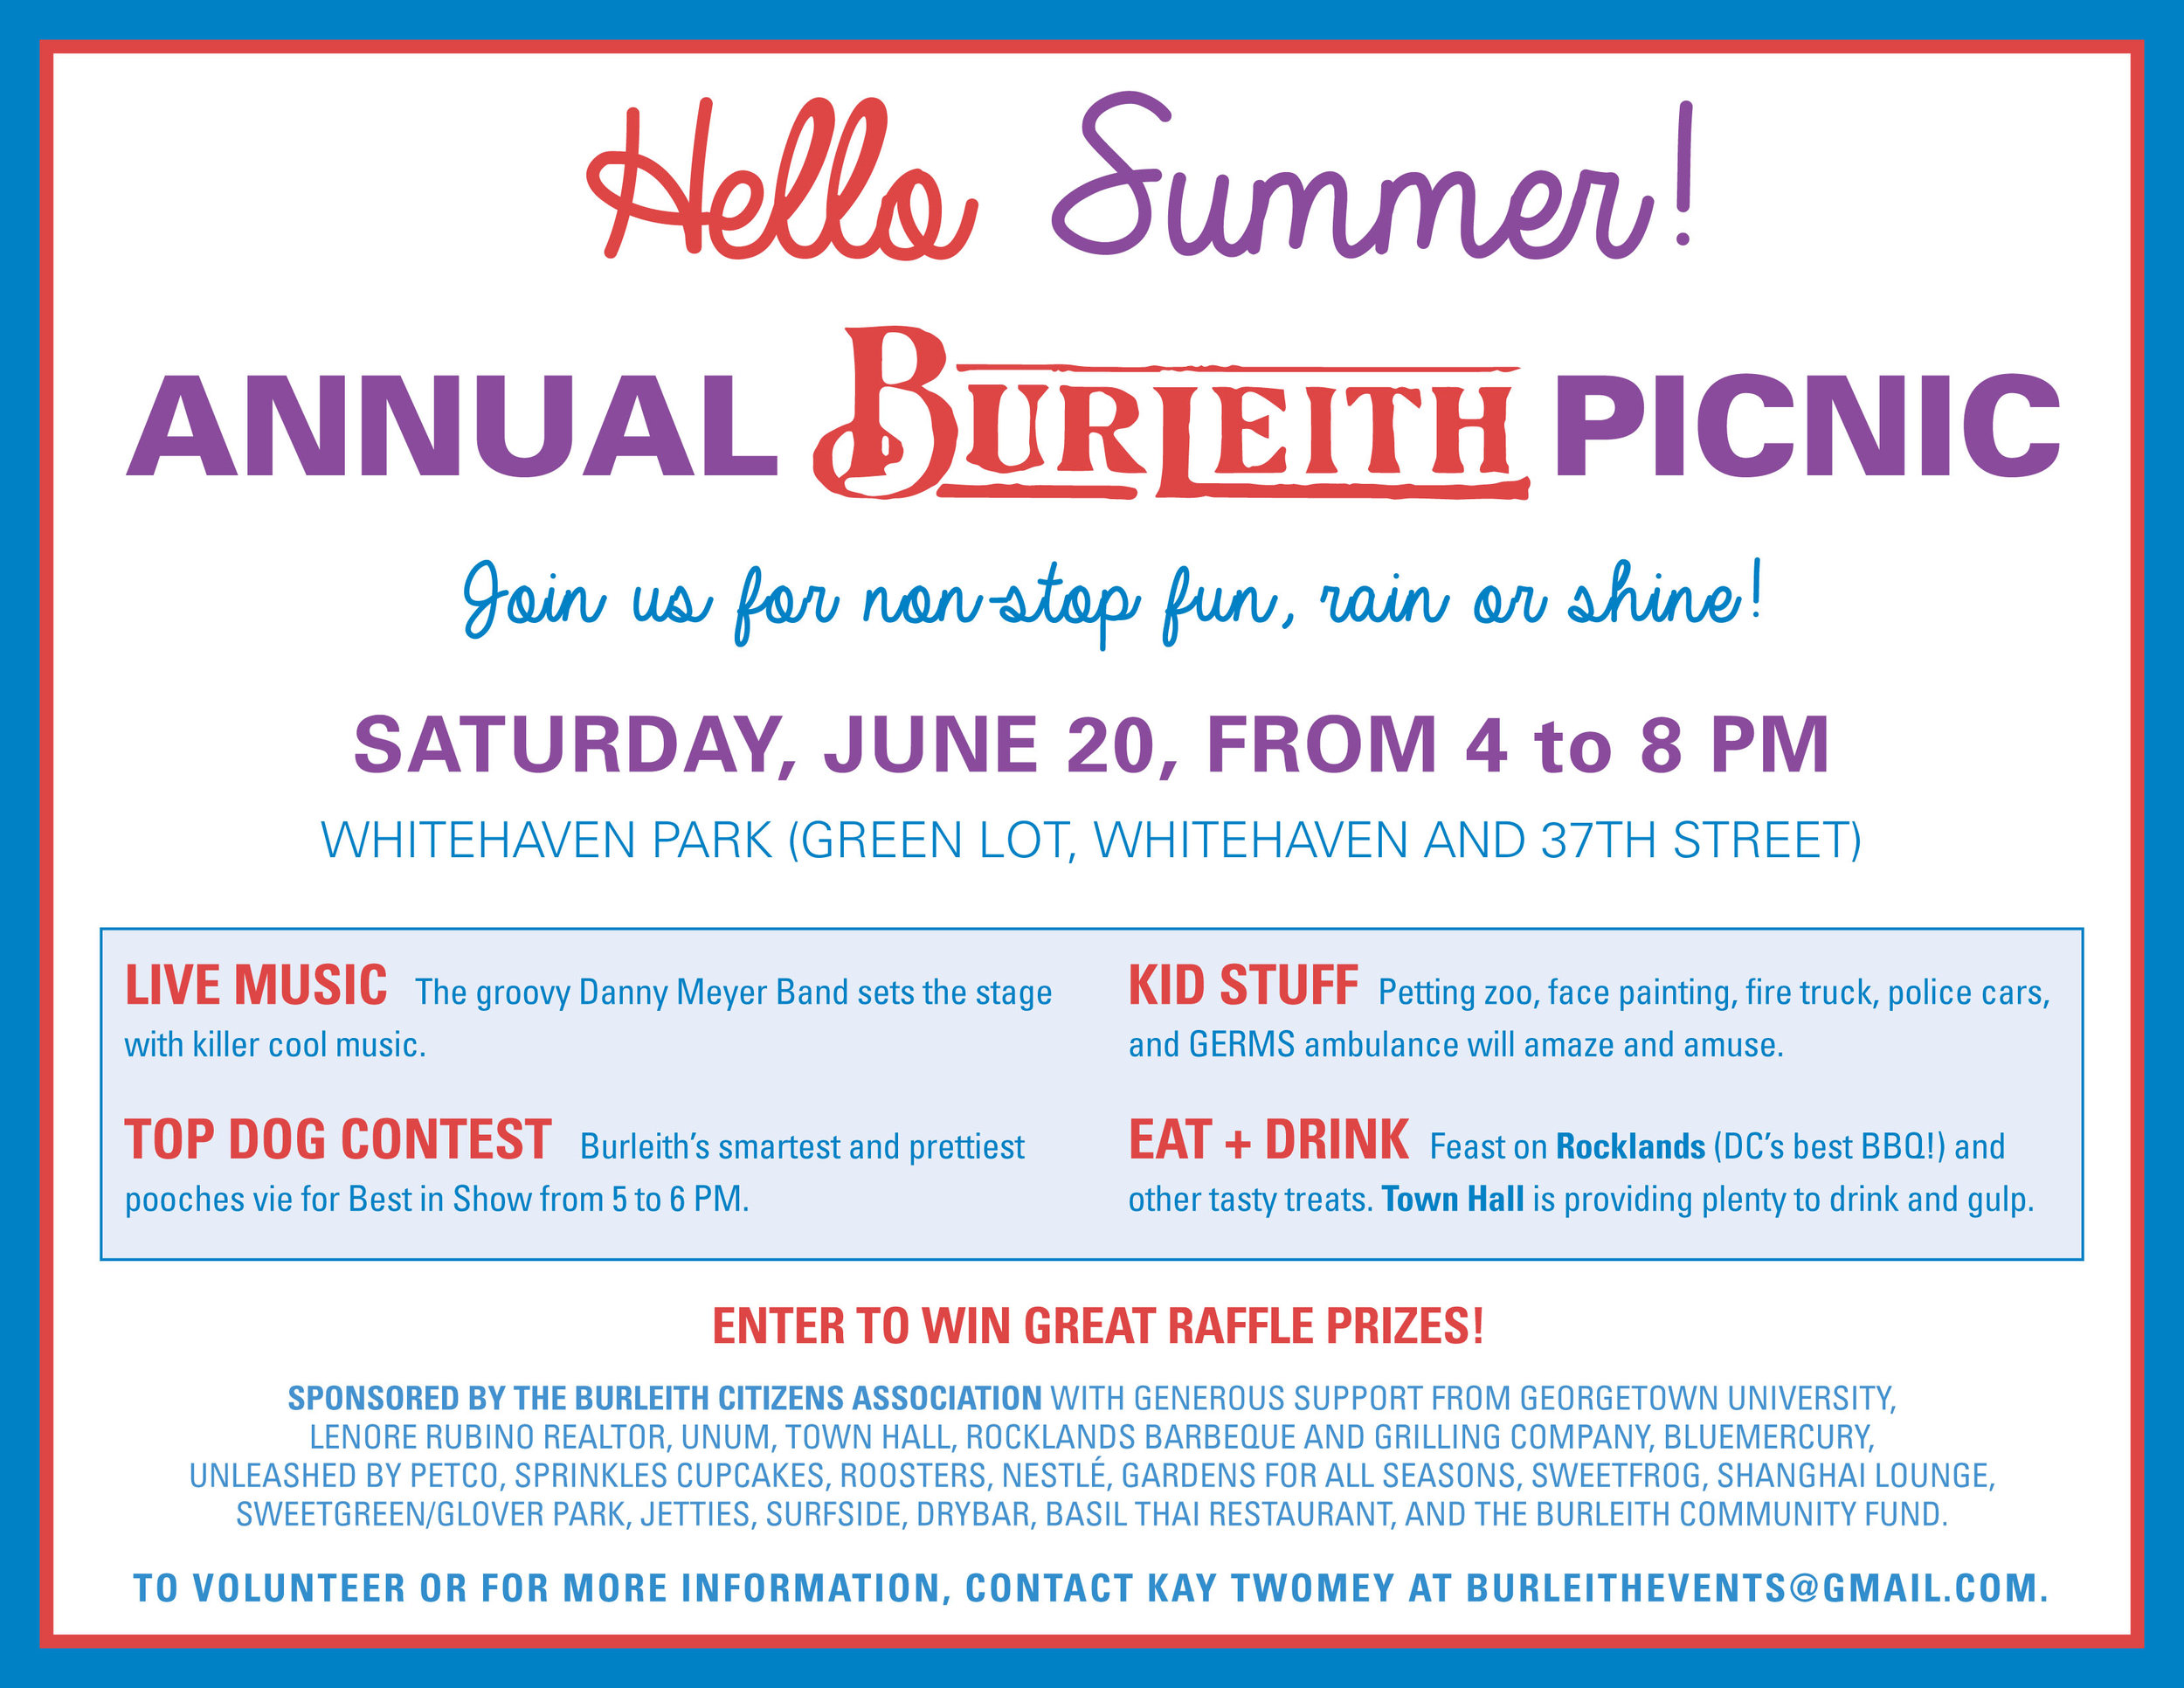 2015-Picnic-Horizontal-Flyer.jpg